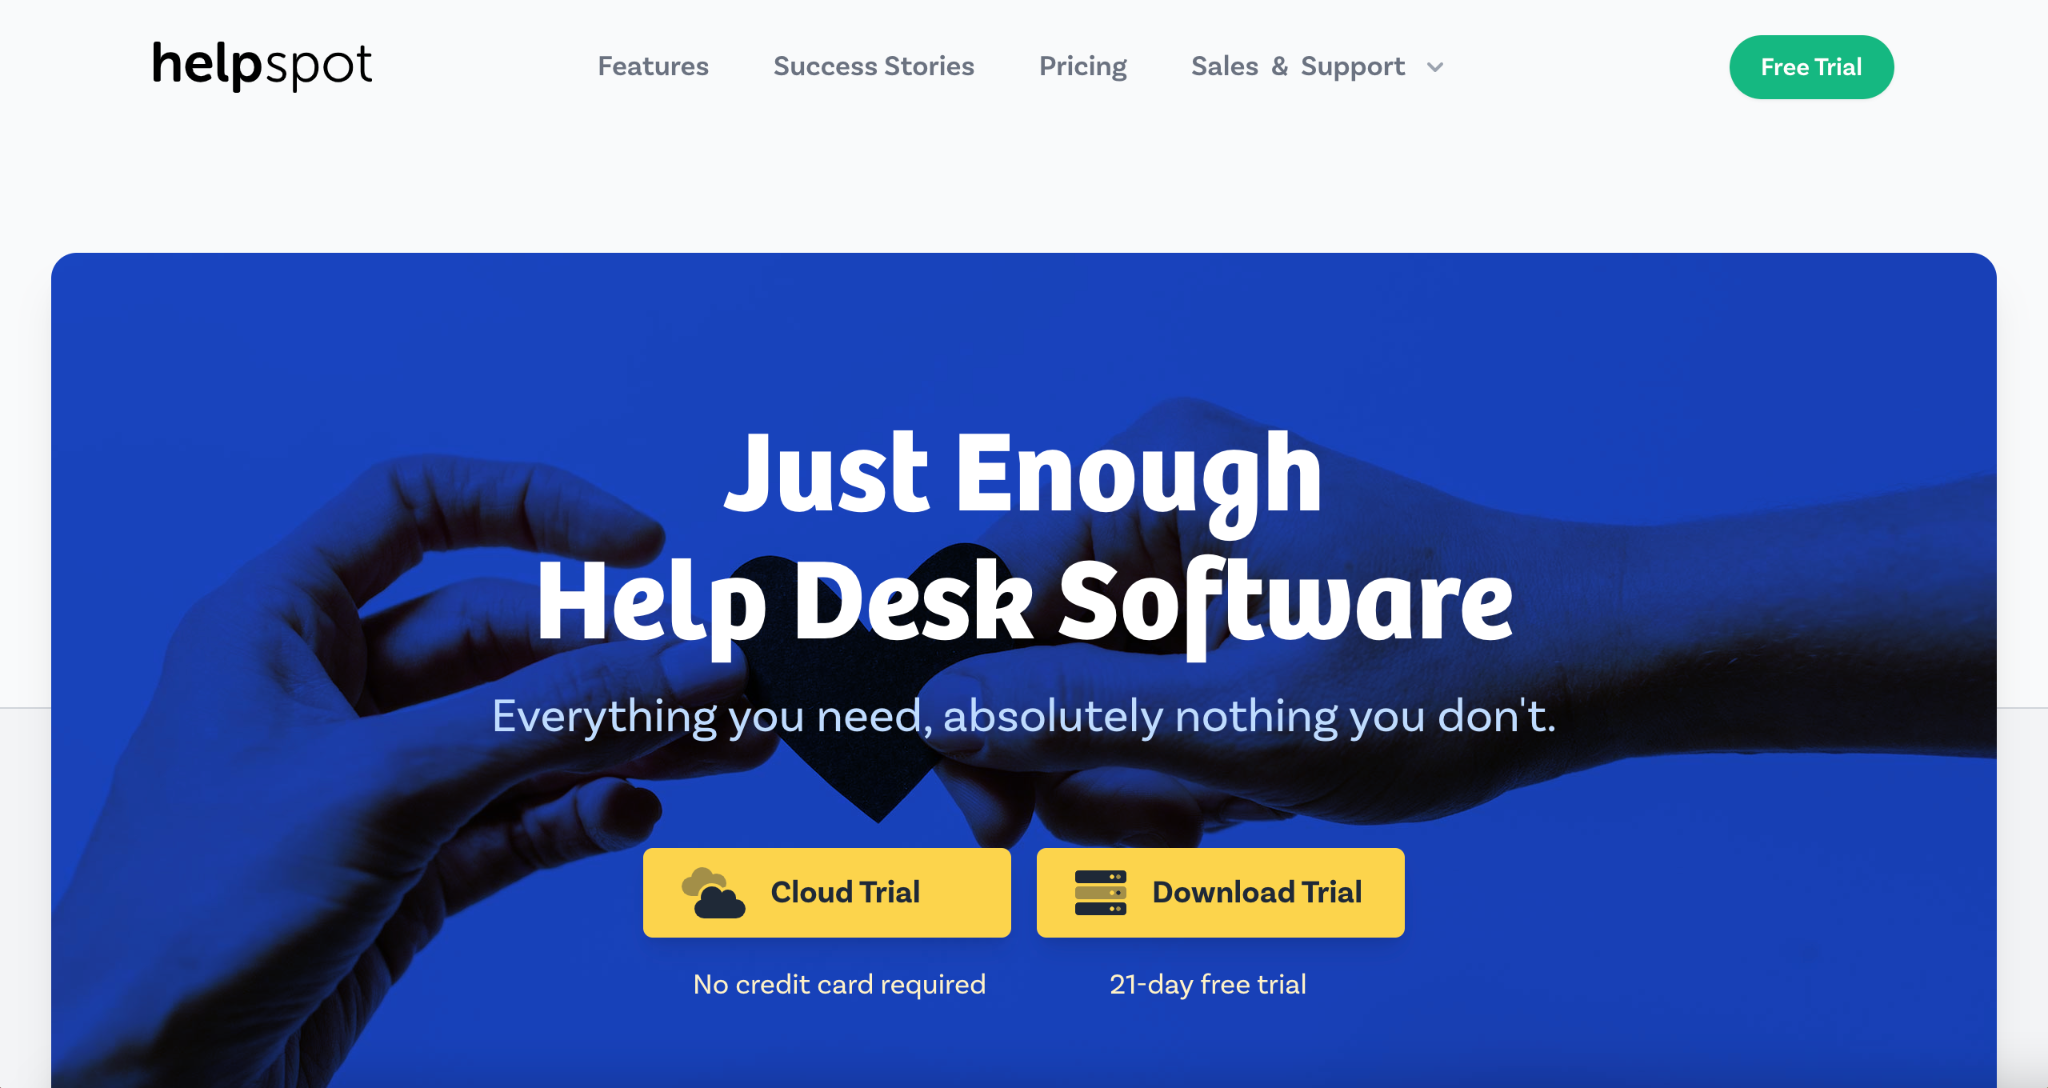 HelpSpot: Just enough help desk software; everything you need, absolutely nothing you don't.